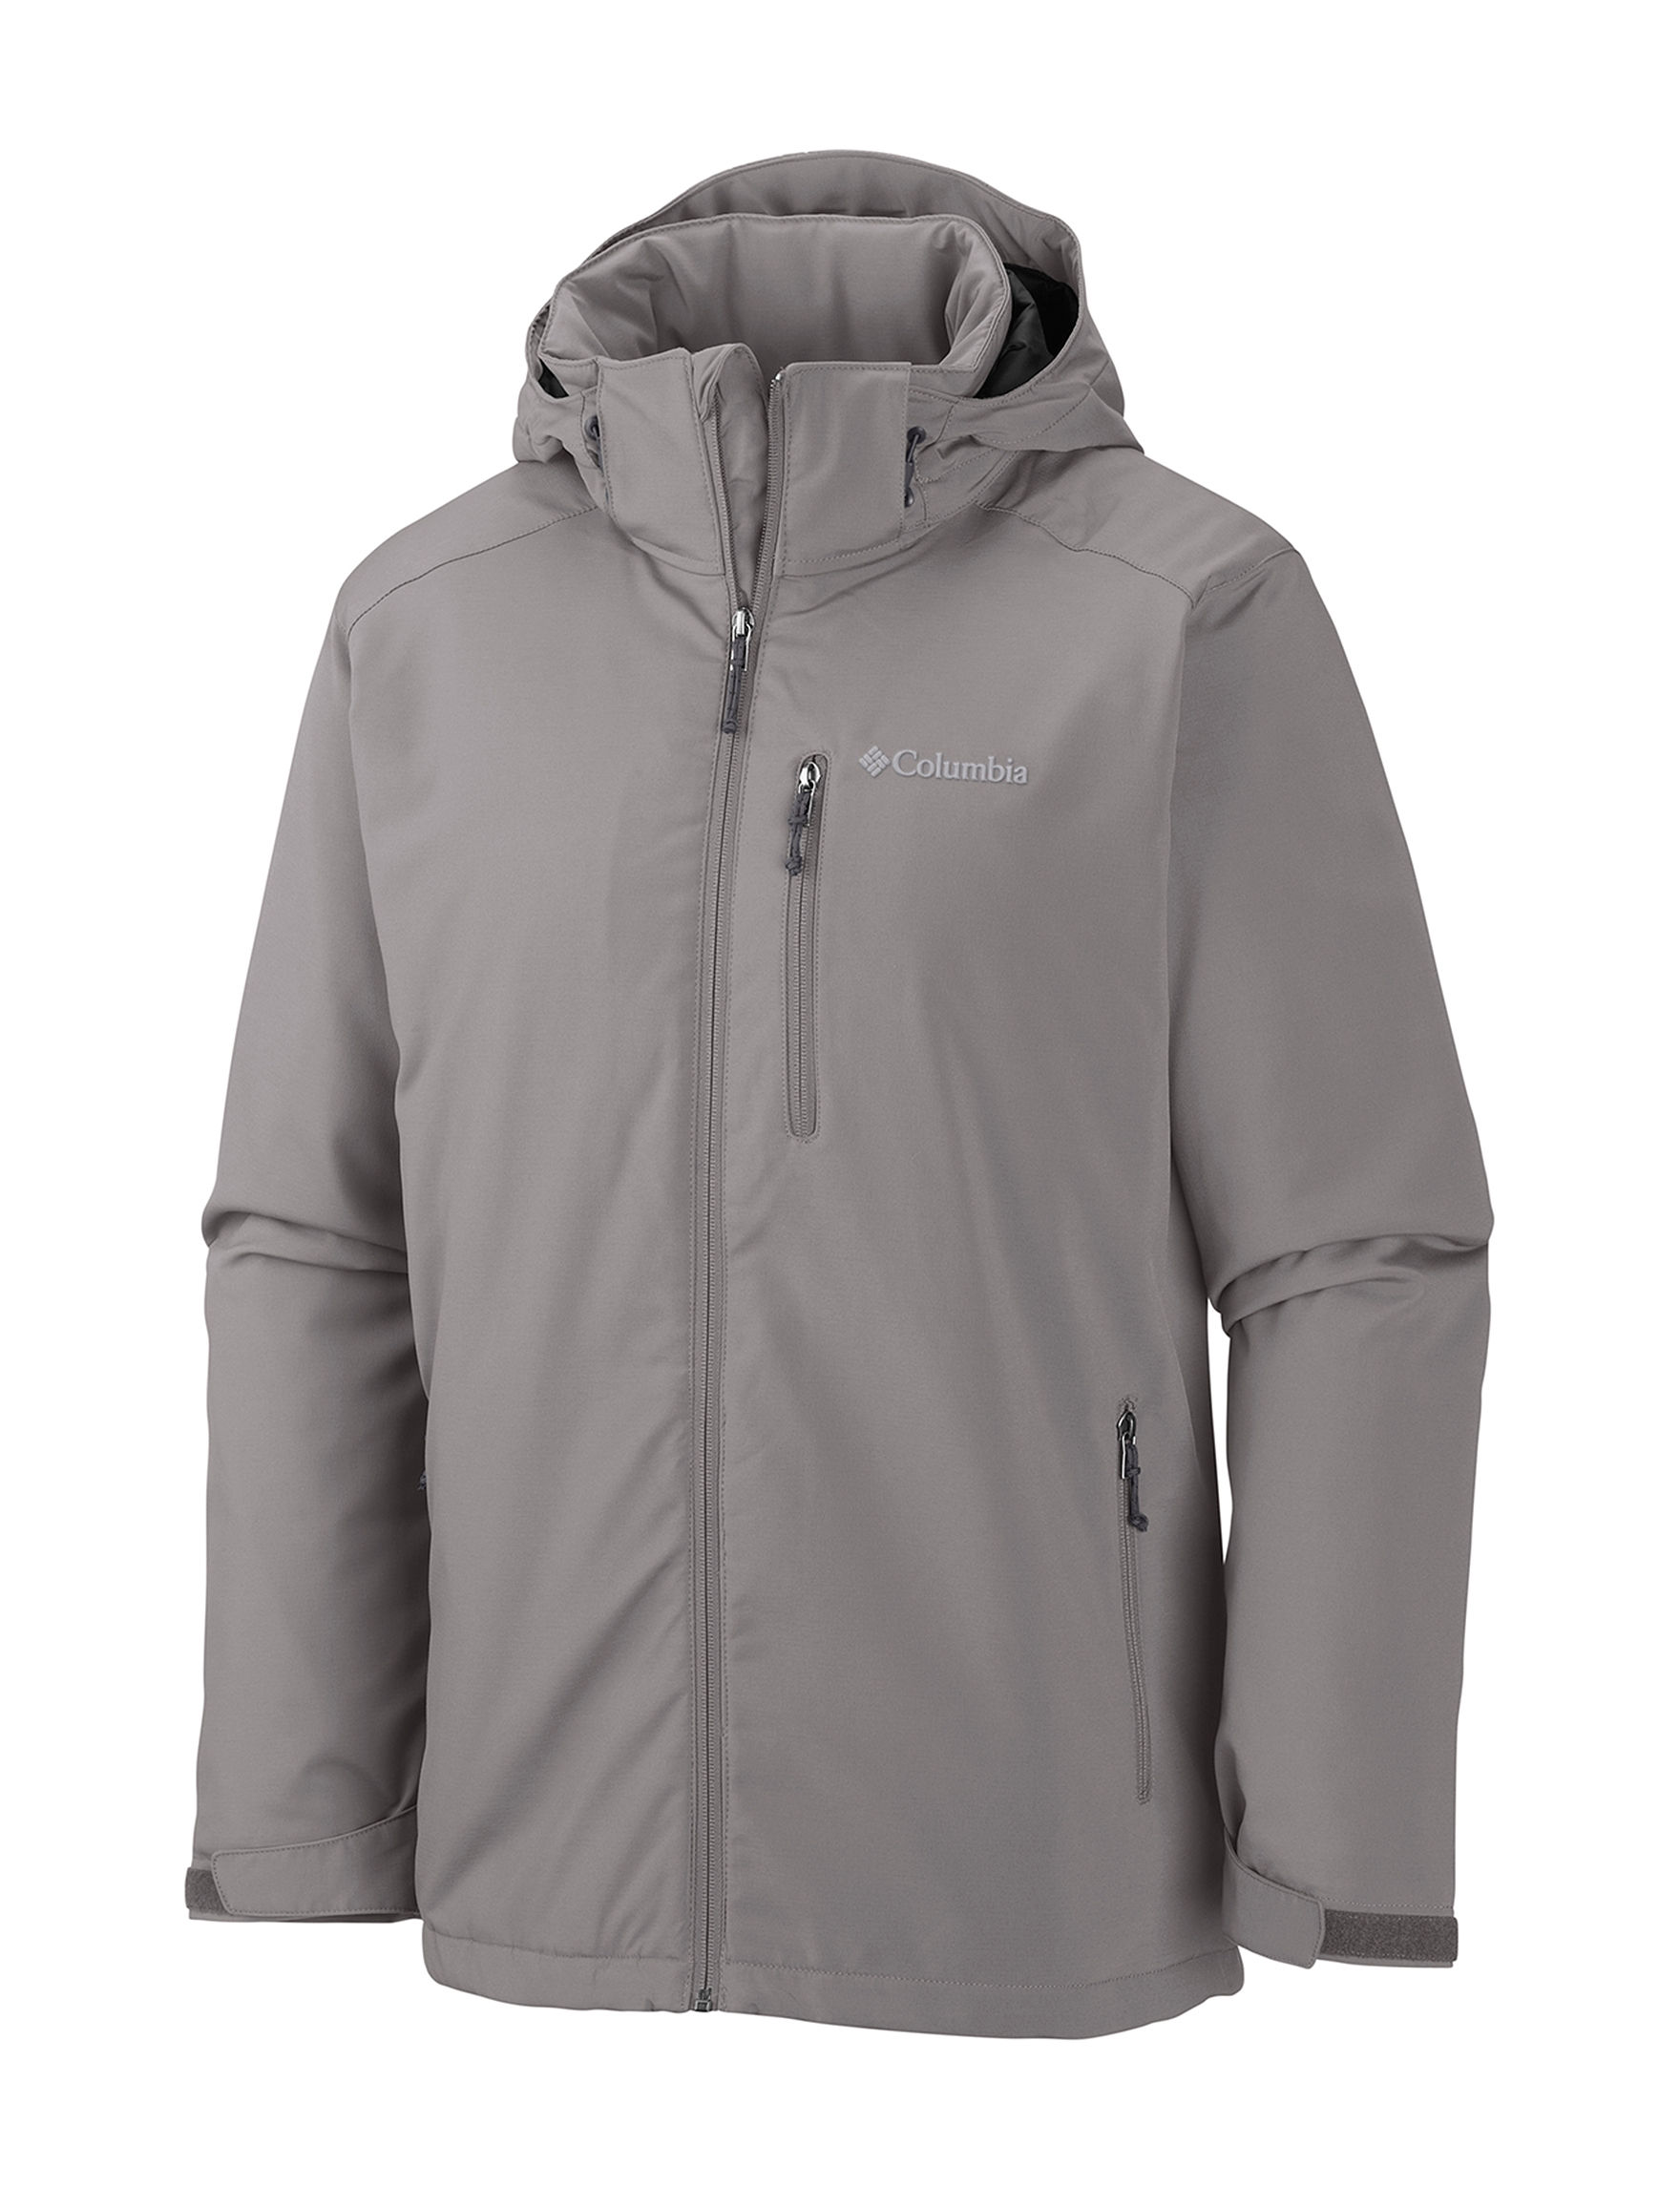 Columbia Grey Insulated Jackets